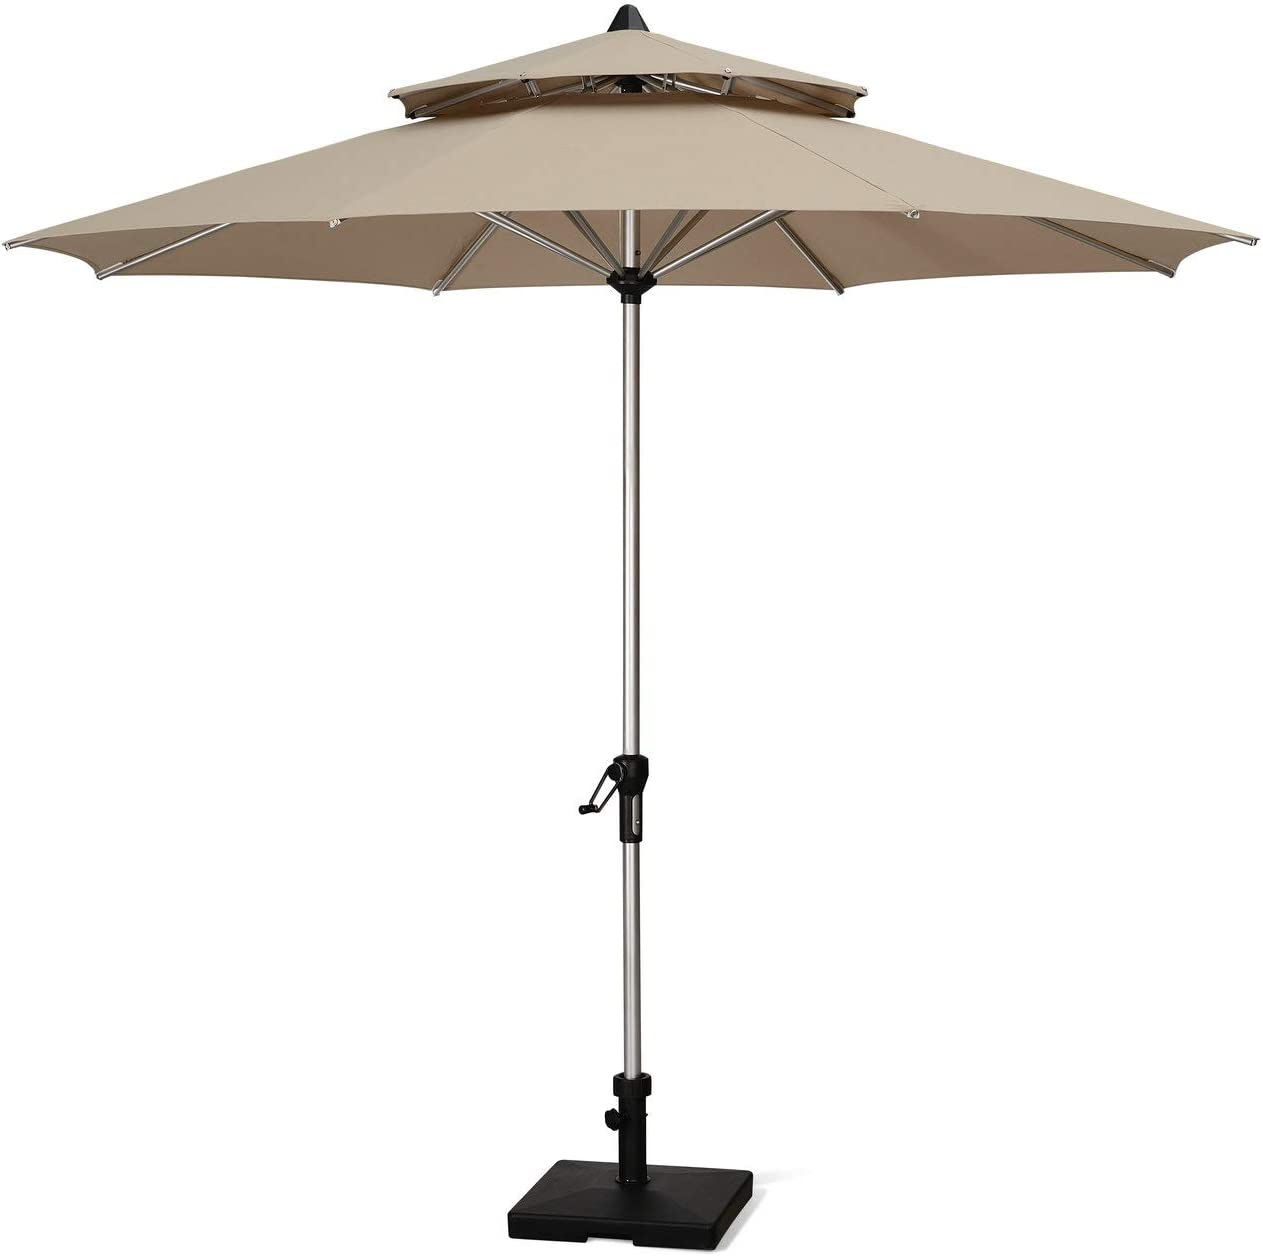 PURPLE LEAF 9 Feet Double Top Deluxe Sunbrella Patio Umbrella Outdoor Market Umbrella Garden Umbrella, Beige